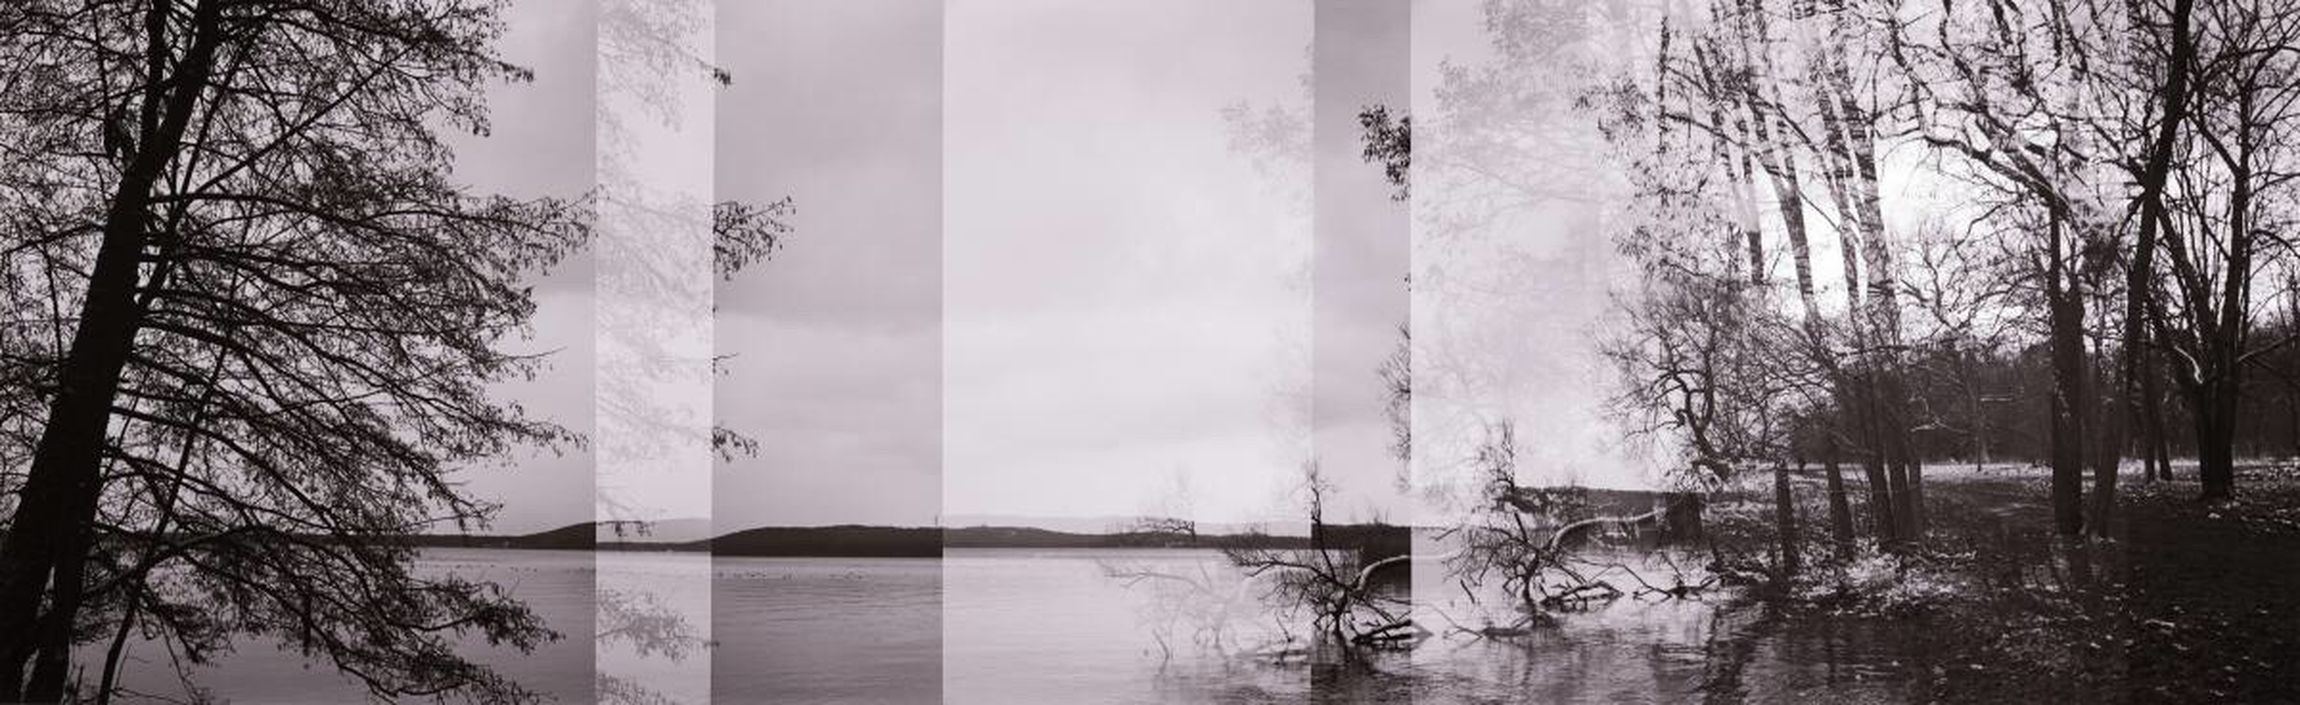 Fragments... The Innovator Here Belongs To Me Analogue Photography Agfa Isola TX400 Film Photography Lake View Lakeshore Lakeside Nature Trees Winter Spring Blackandwhite Monochrome Schwarzweiß Black And White Müggelsee - Panorama Cut And Paste